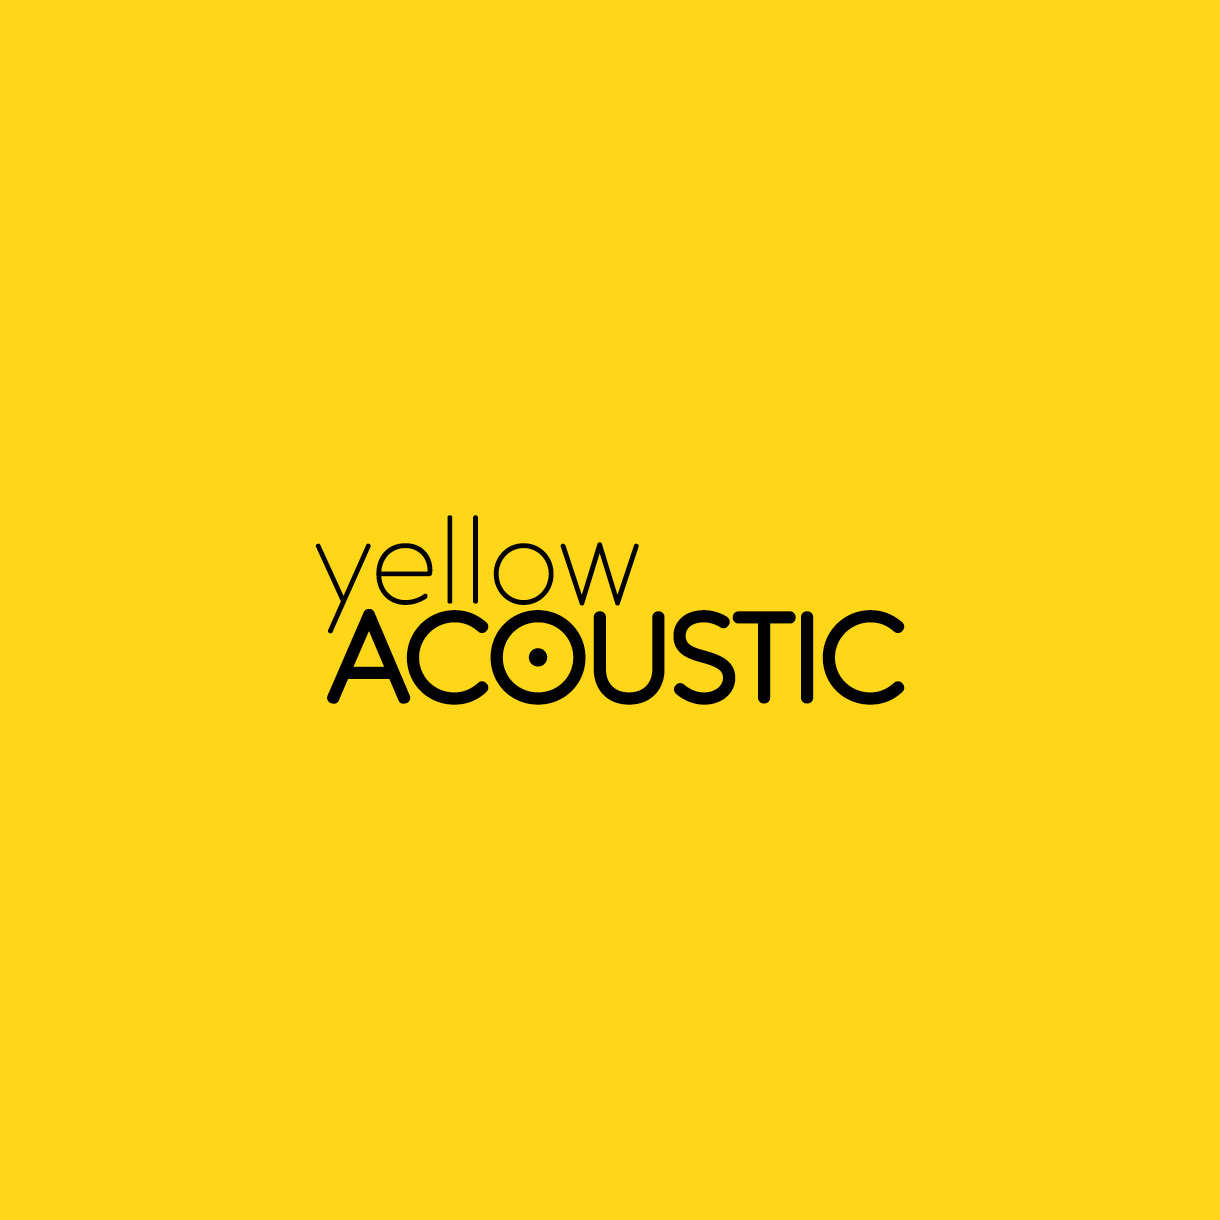 Yellow Acoustic - Logo design